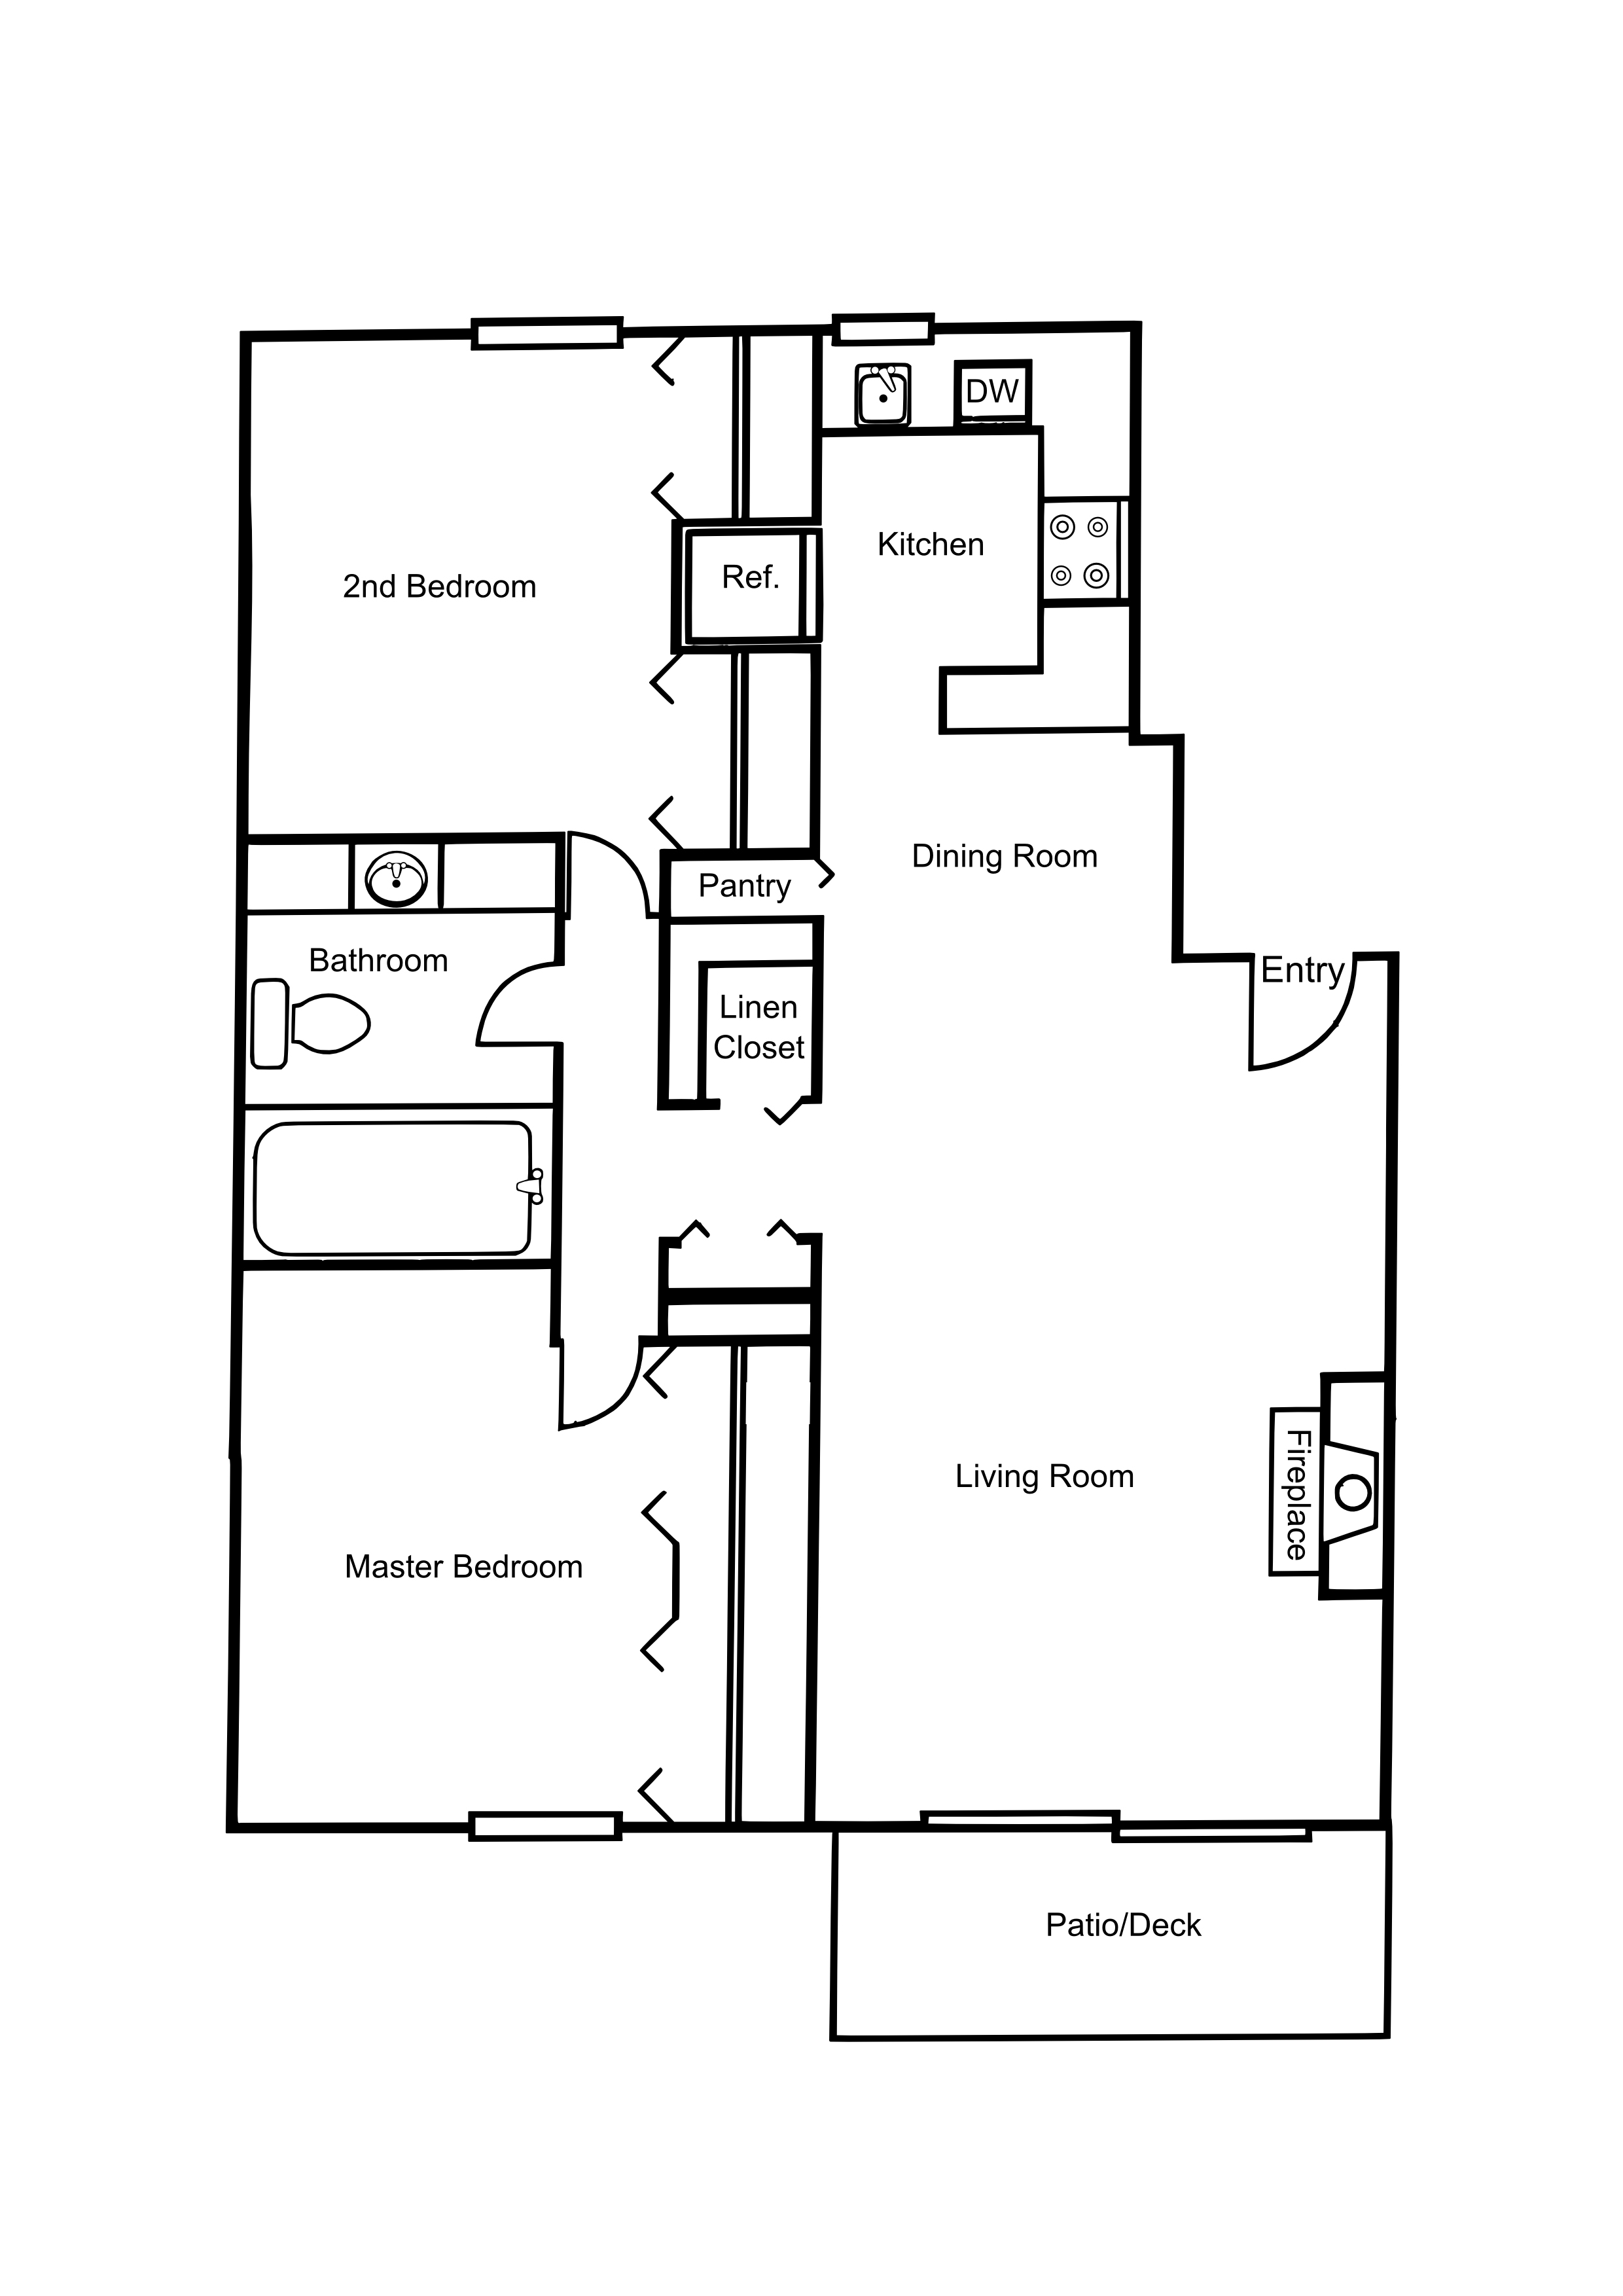 Floor Plan Graphic. Interactive floor plans are easy to setup  even if you don t have